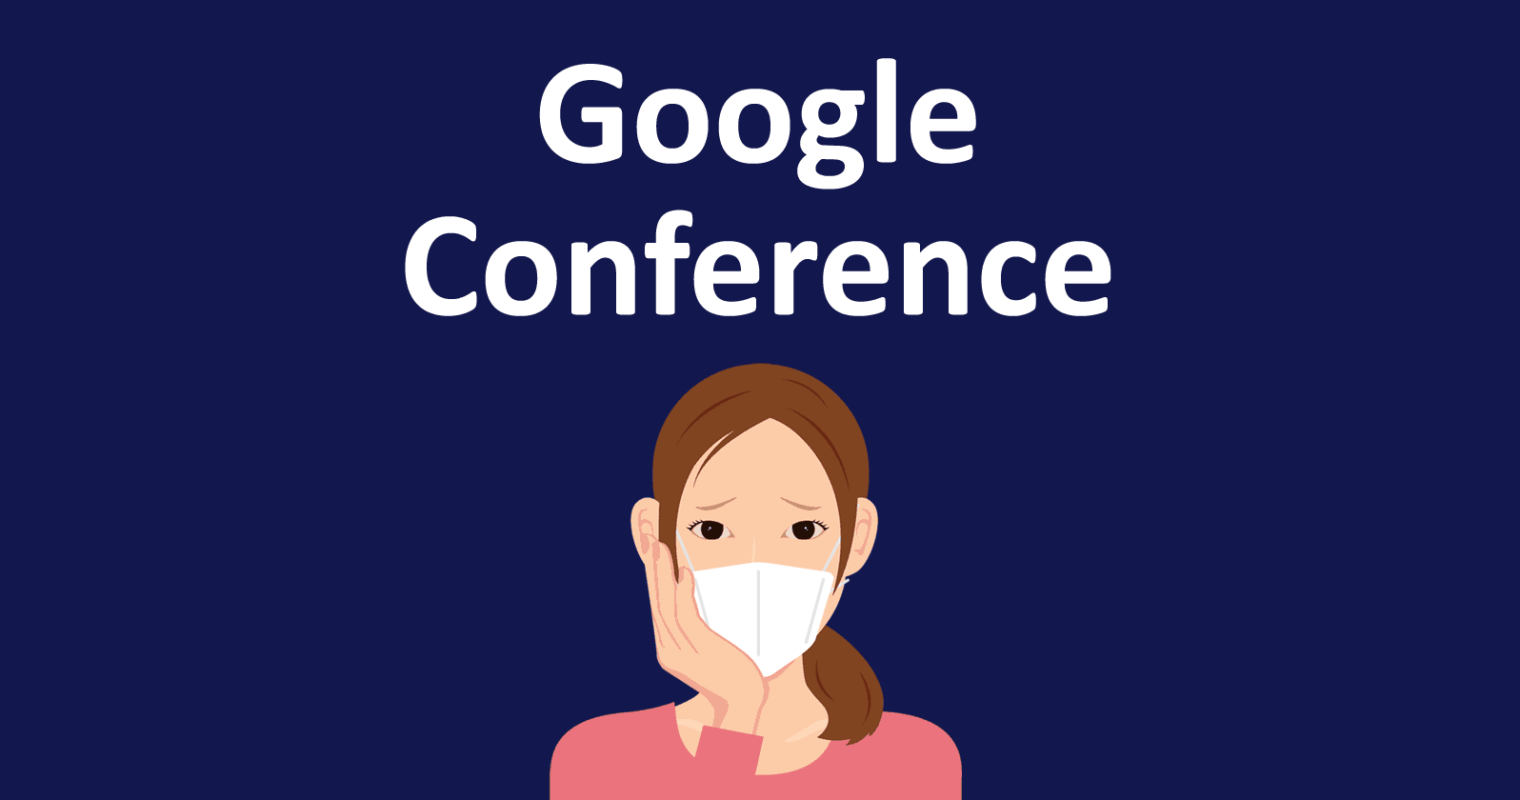 Google Webmaster Conferences Postponed Due to COVID-19 Pandemic